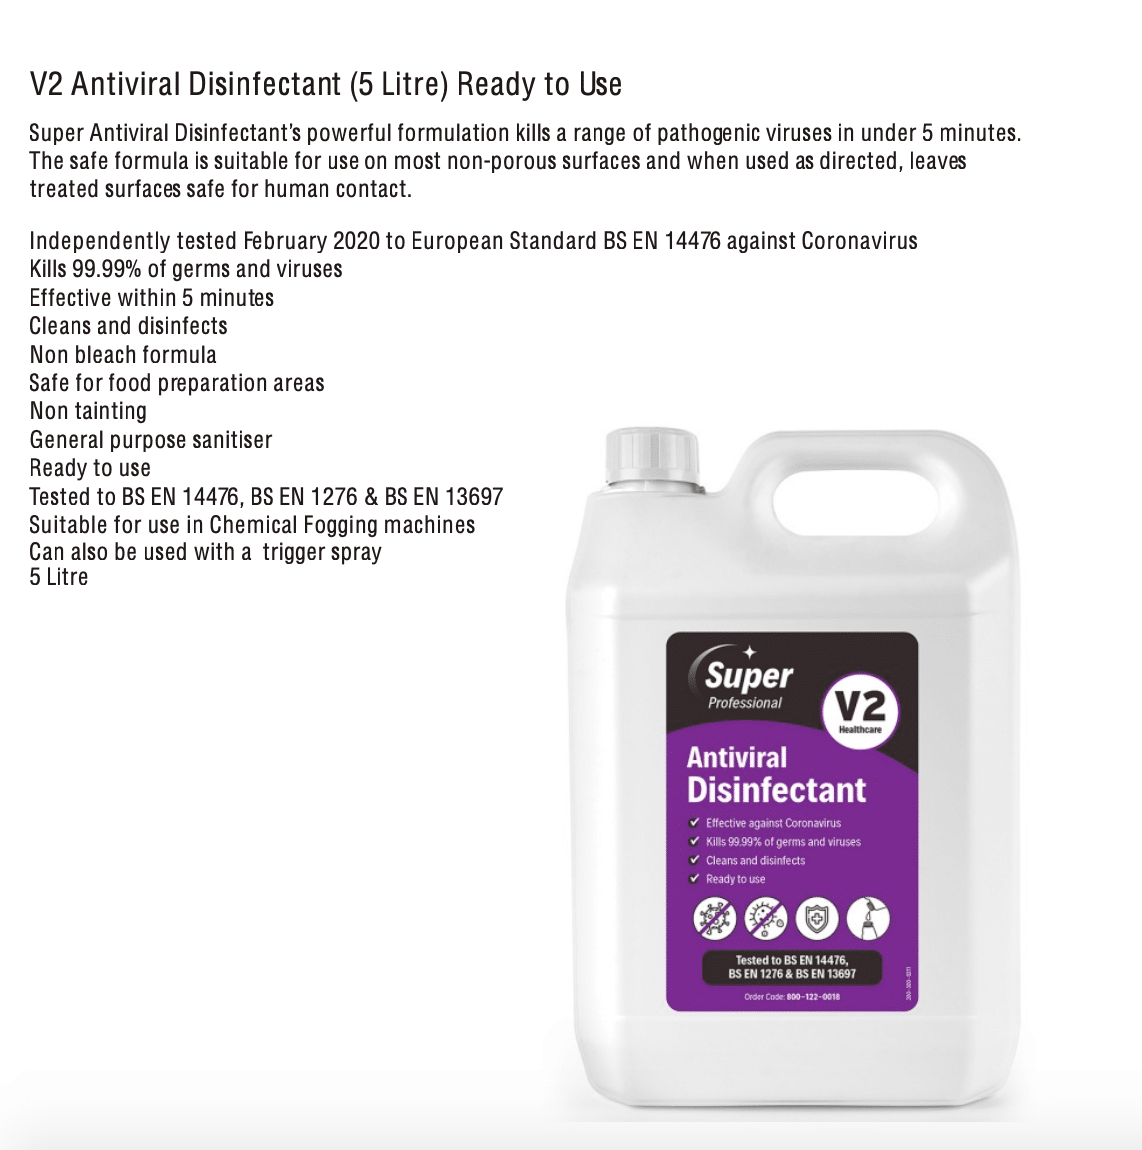 V2 Antiviral Disinfectant